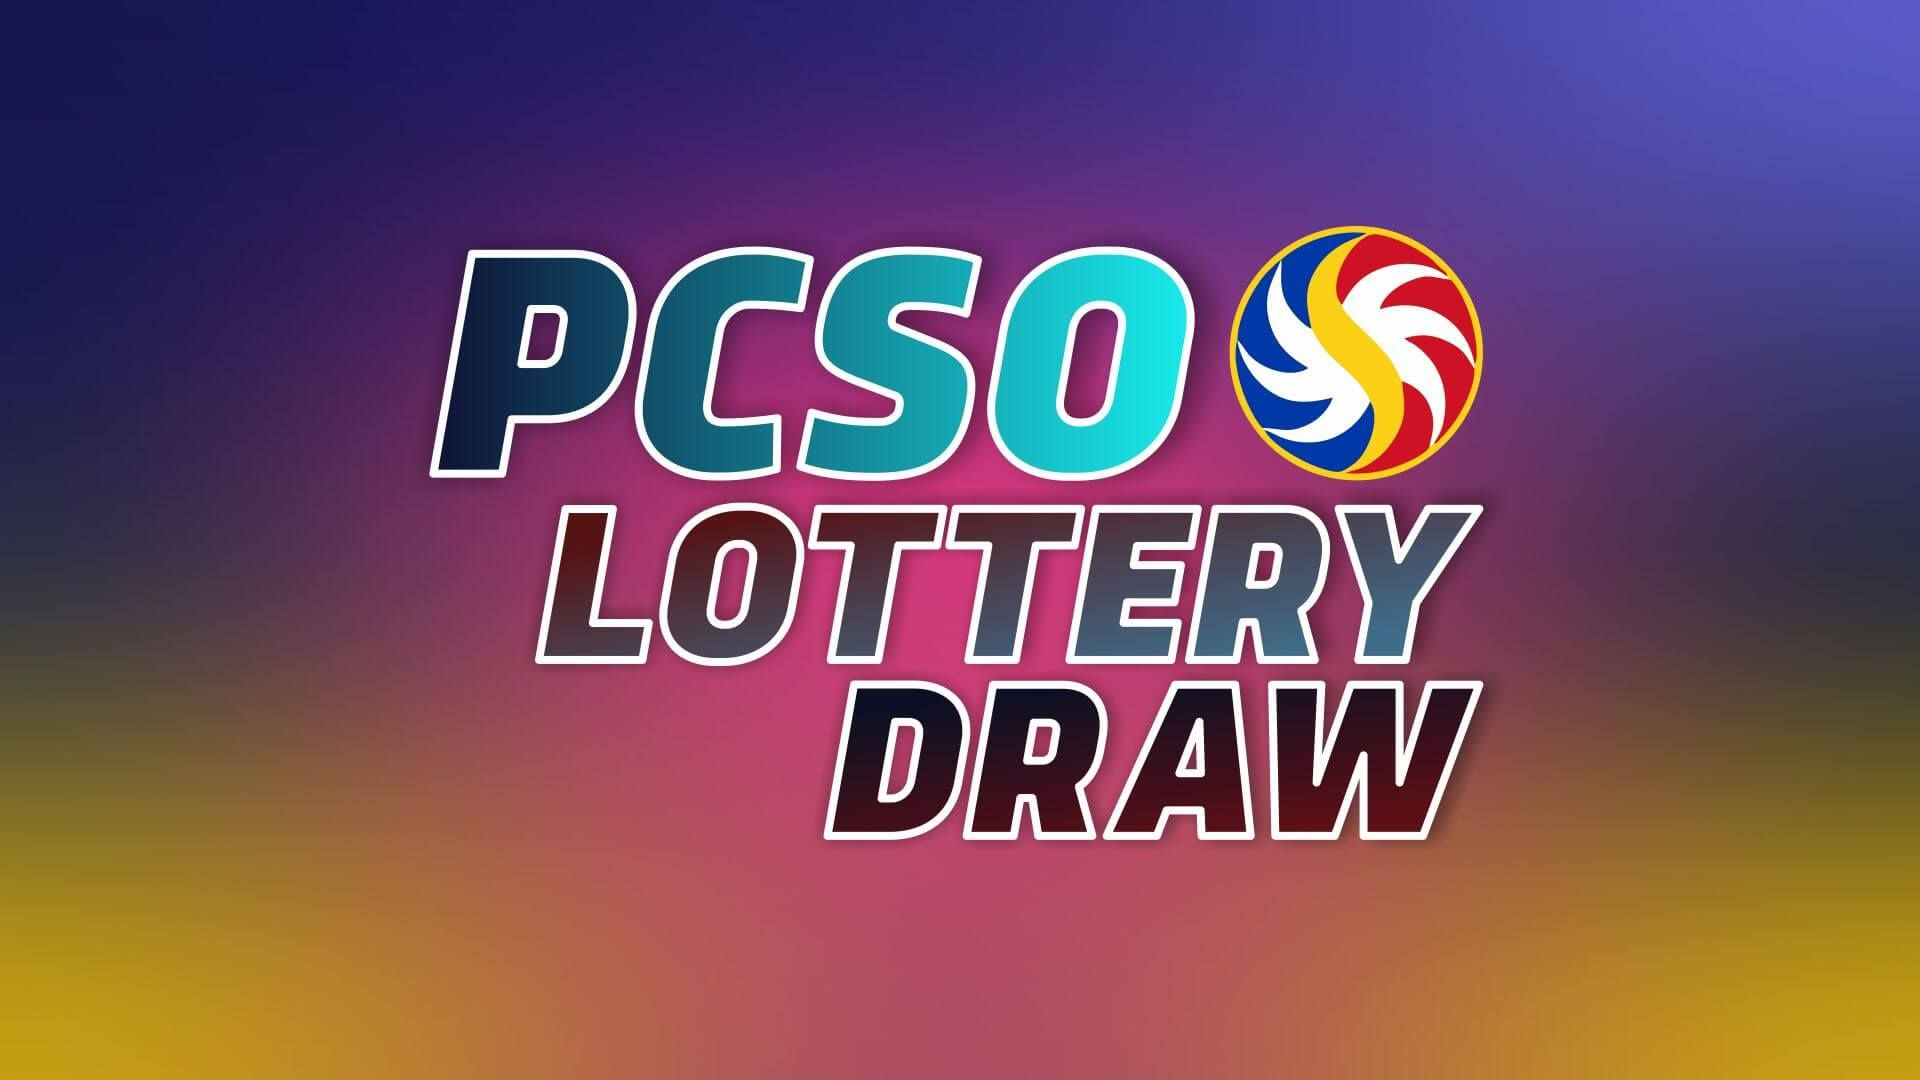 Swertres Hearing Jan 23 2020 In 2020 Winning Lottery Numbers Lotto Draw Lottery Strategy